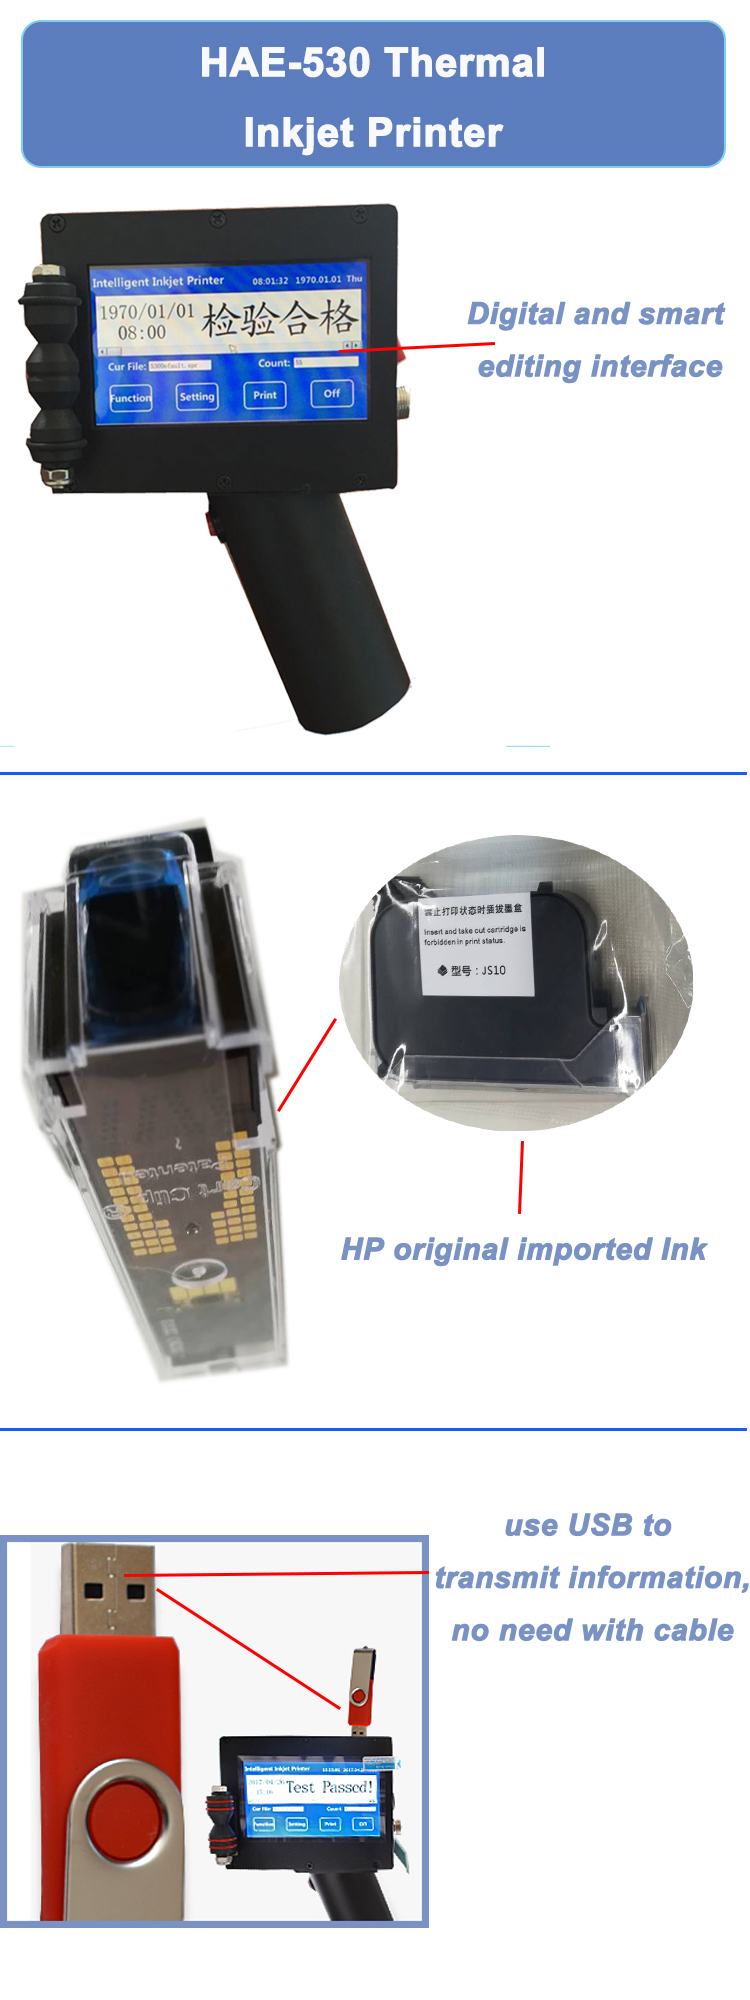 HAE-530 Black Jet Ink Inkjet Printer